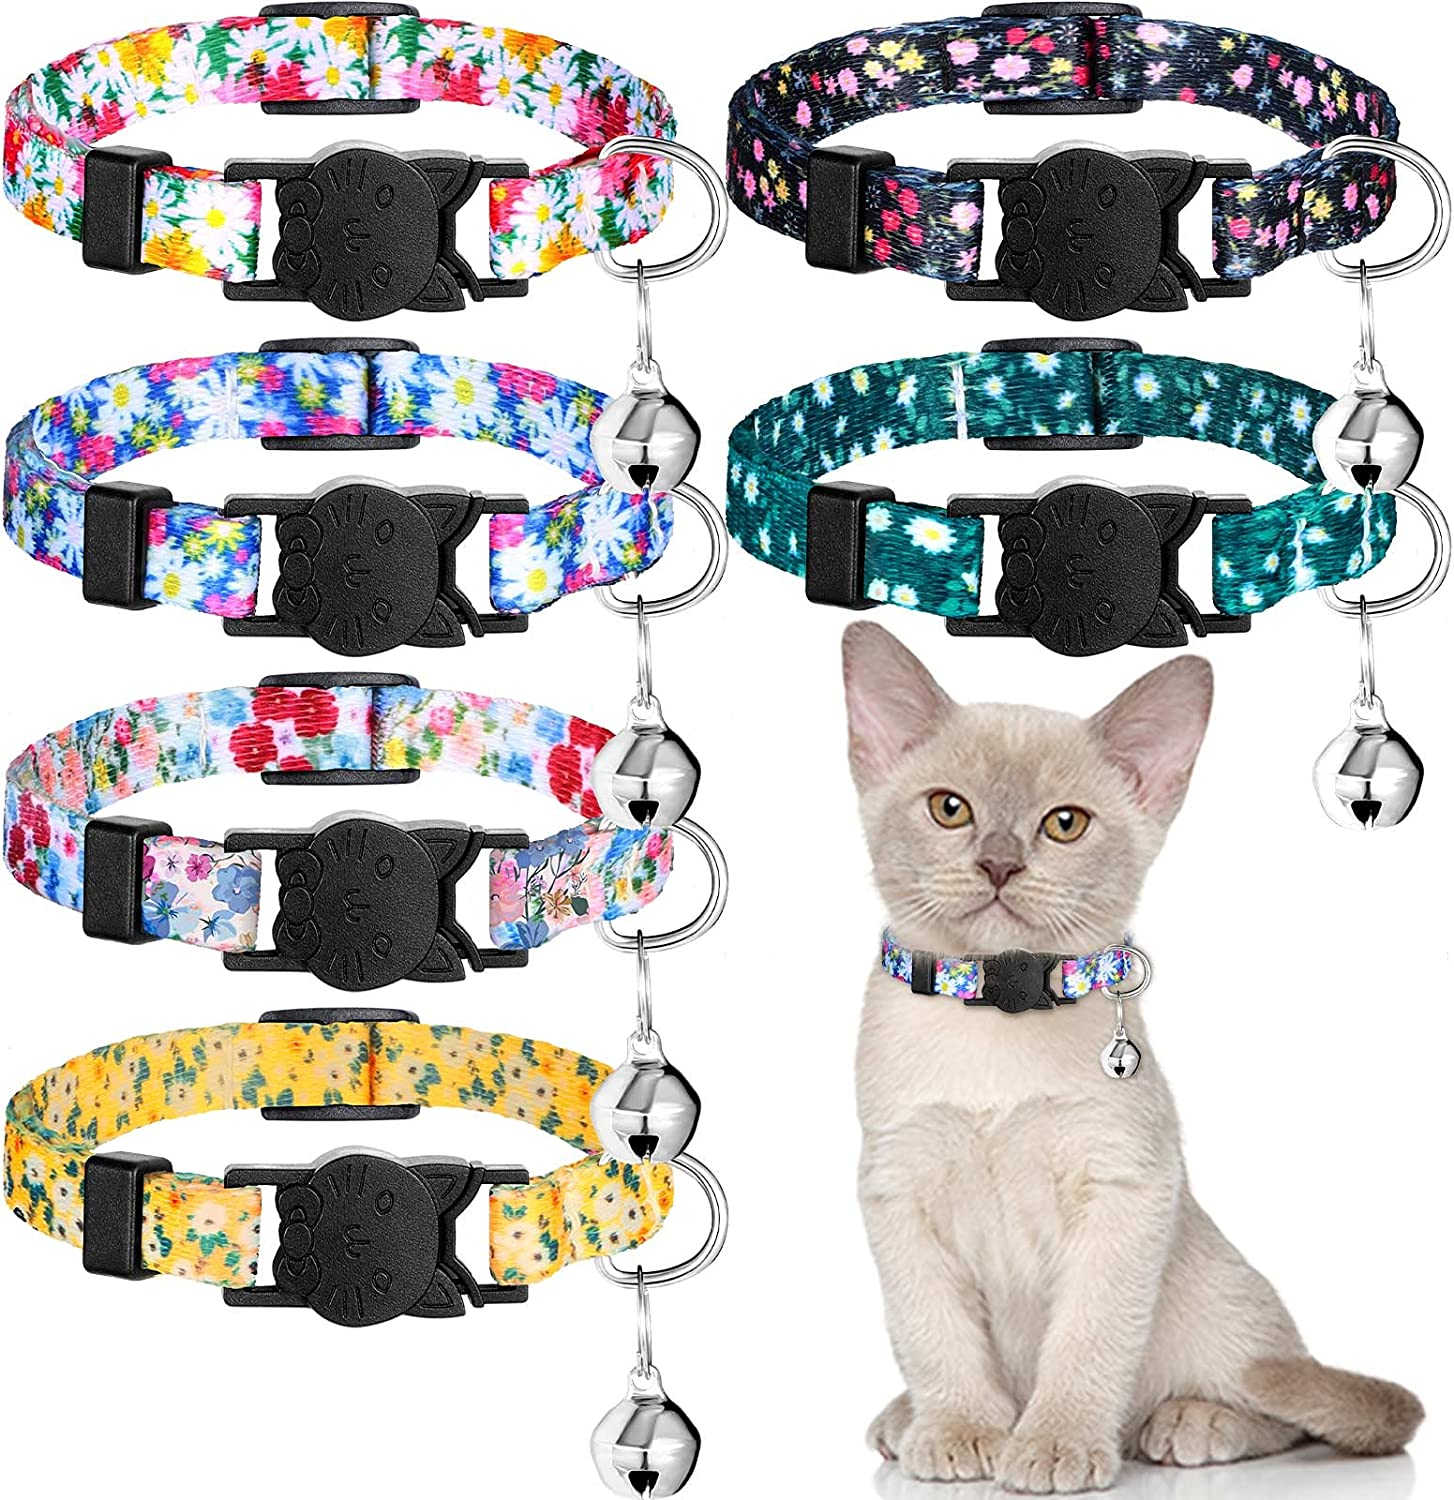 6 Pieces OFFicial site Breakaway Cat Collars Flower with discount Bell Patterns Summer